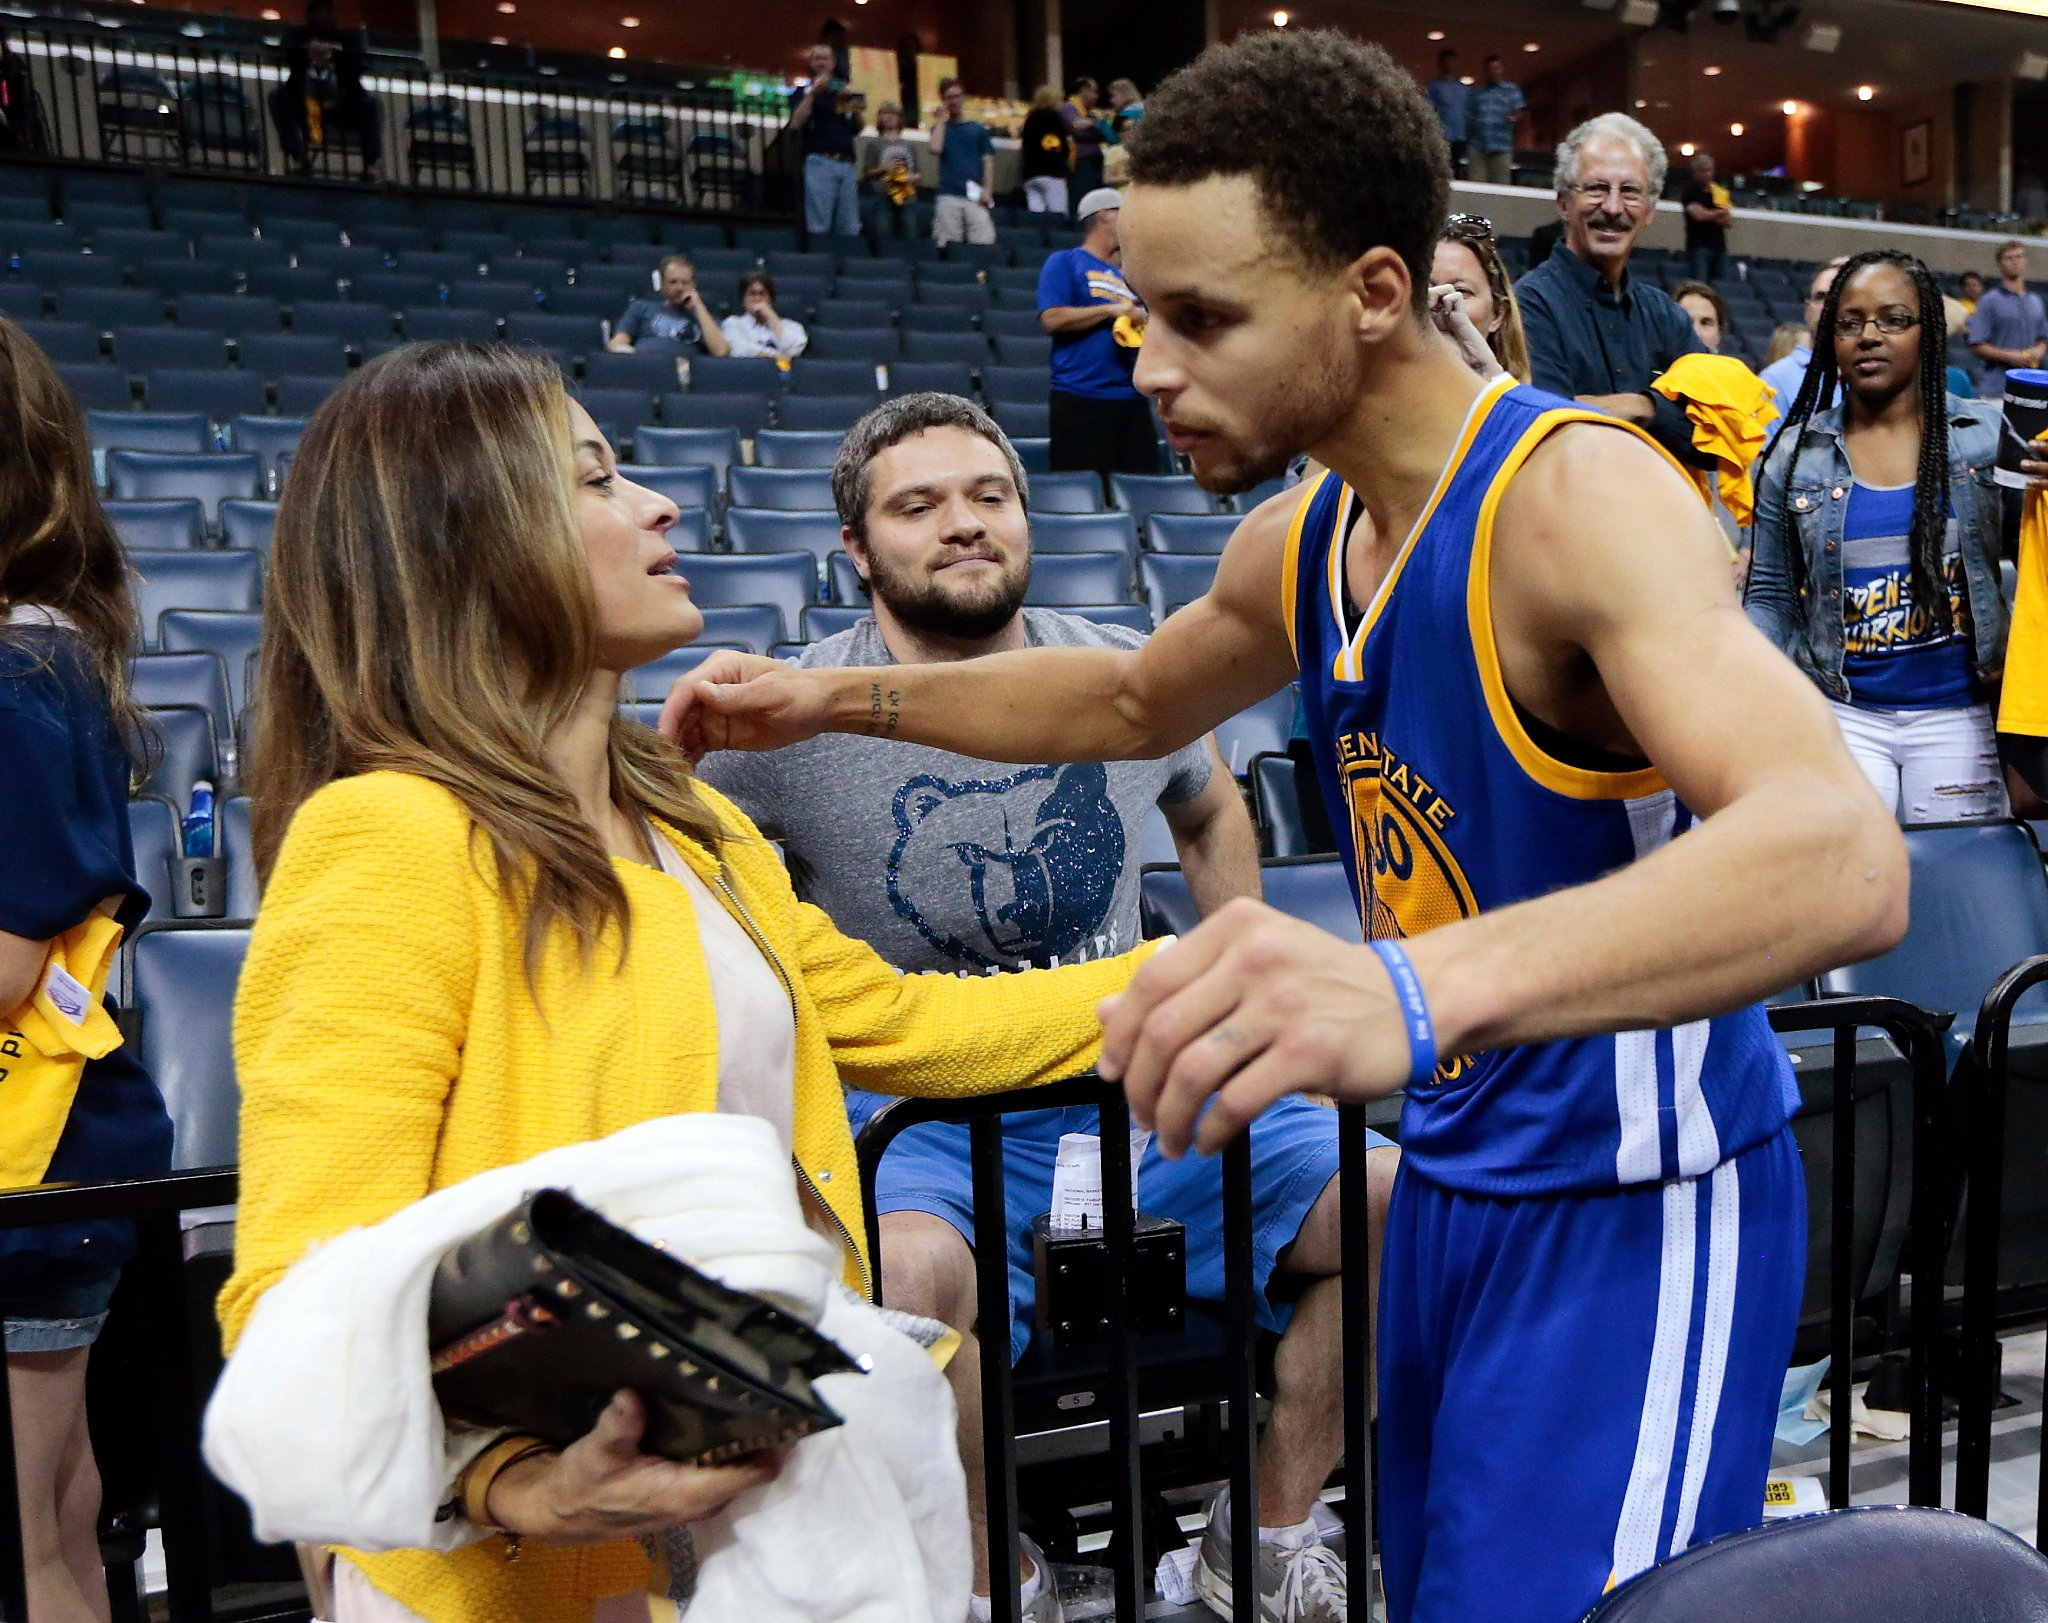 Stephen Curry S Mom Hits Half Court Shot At Event Sfchronicle Com